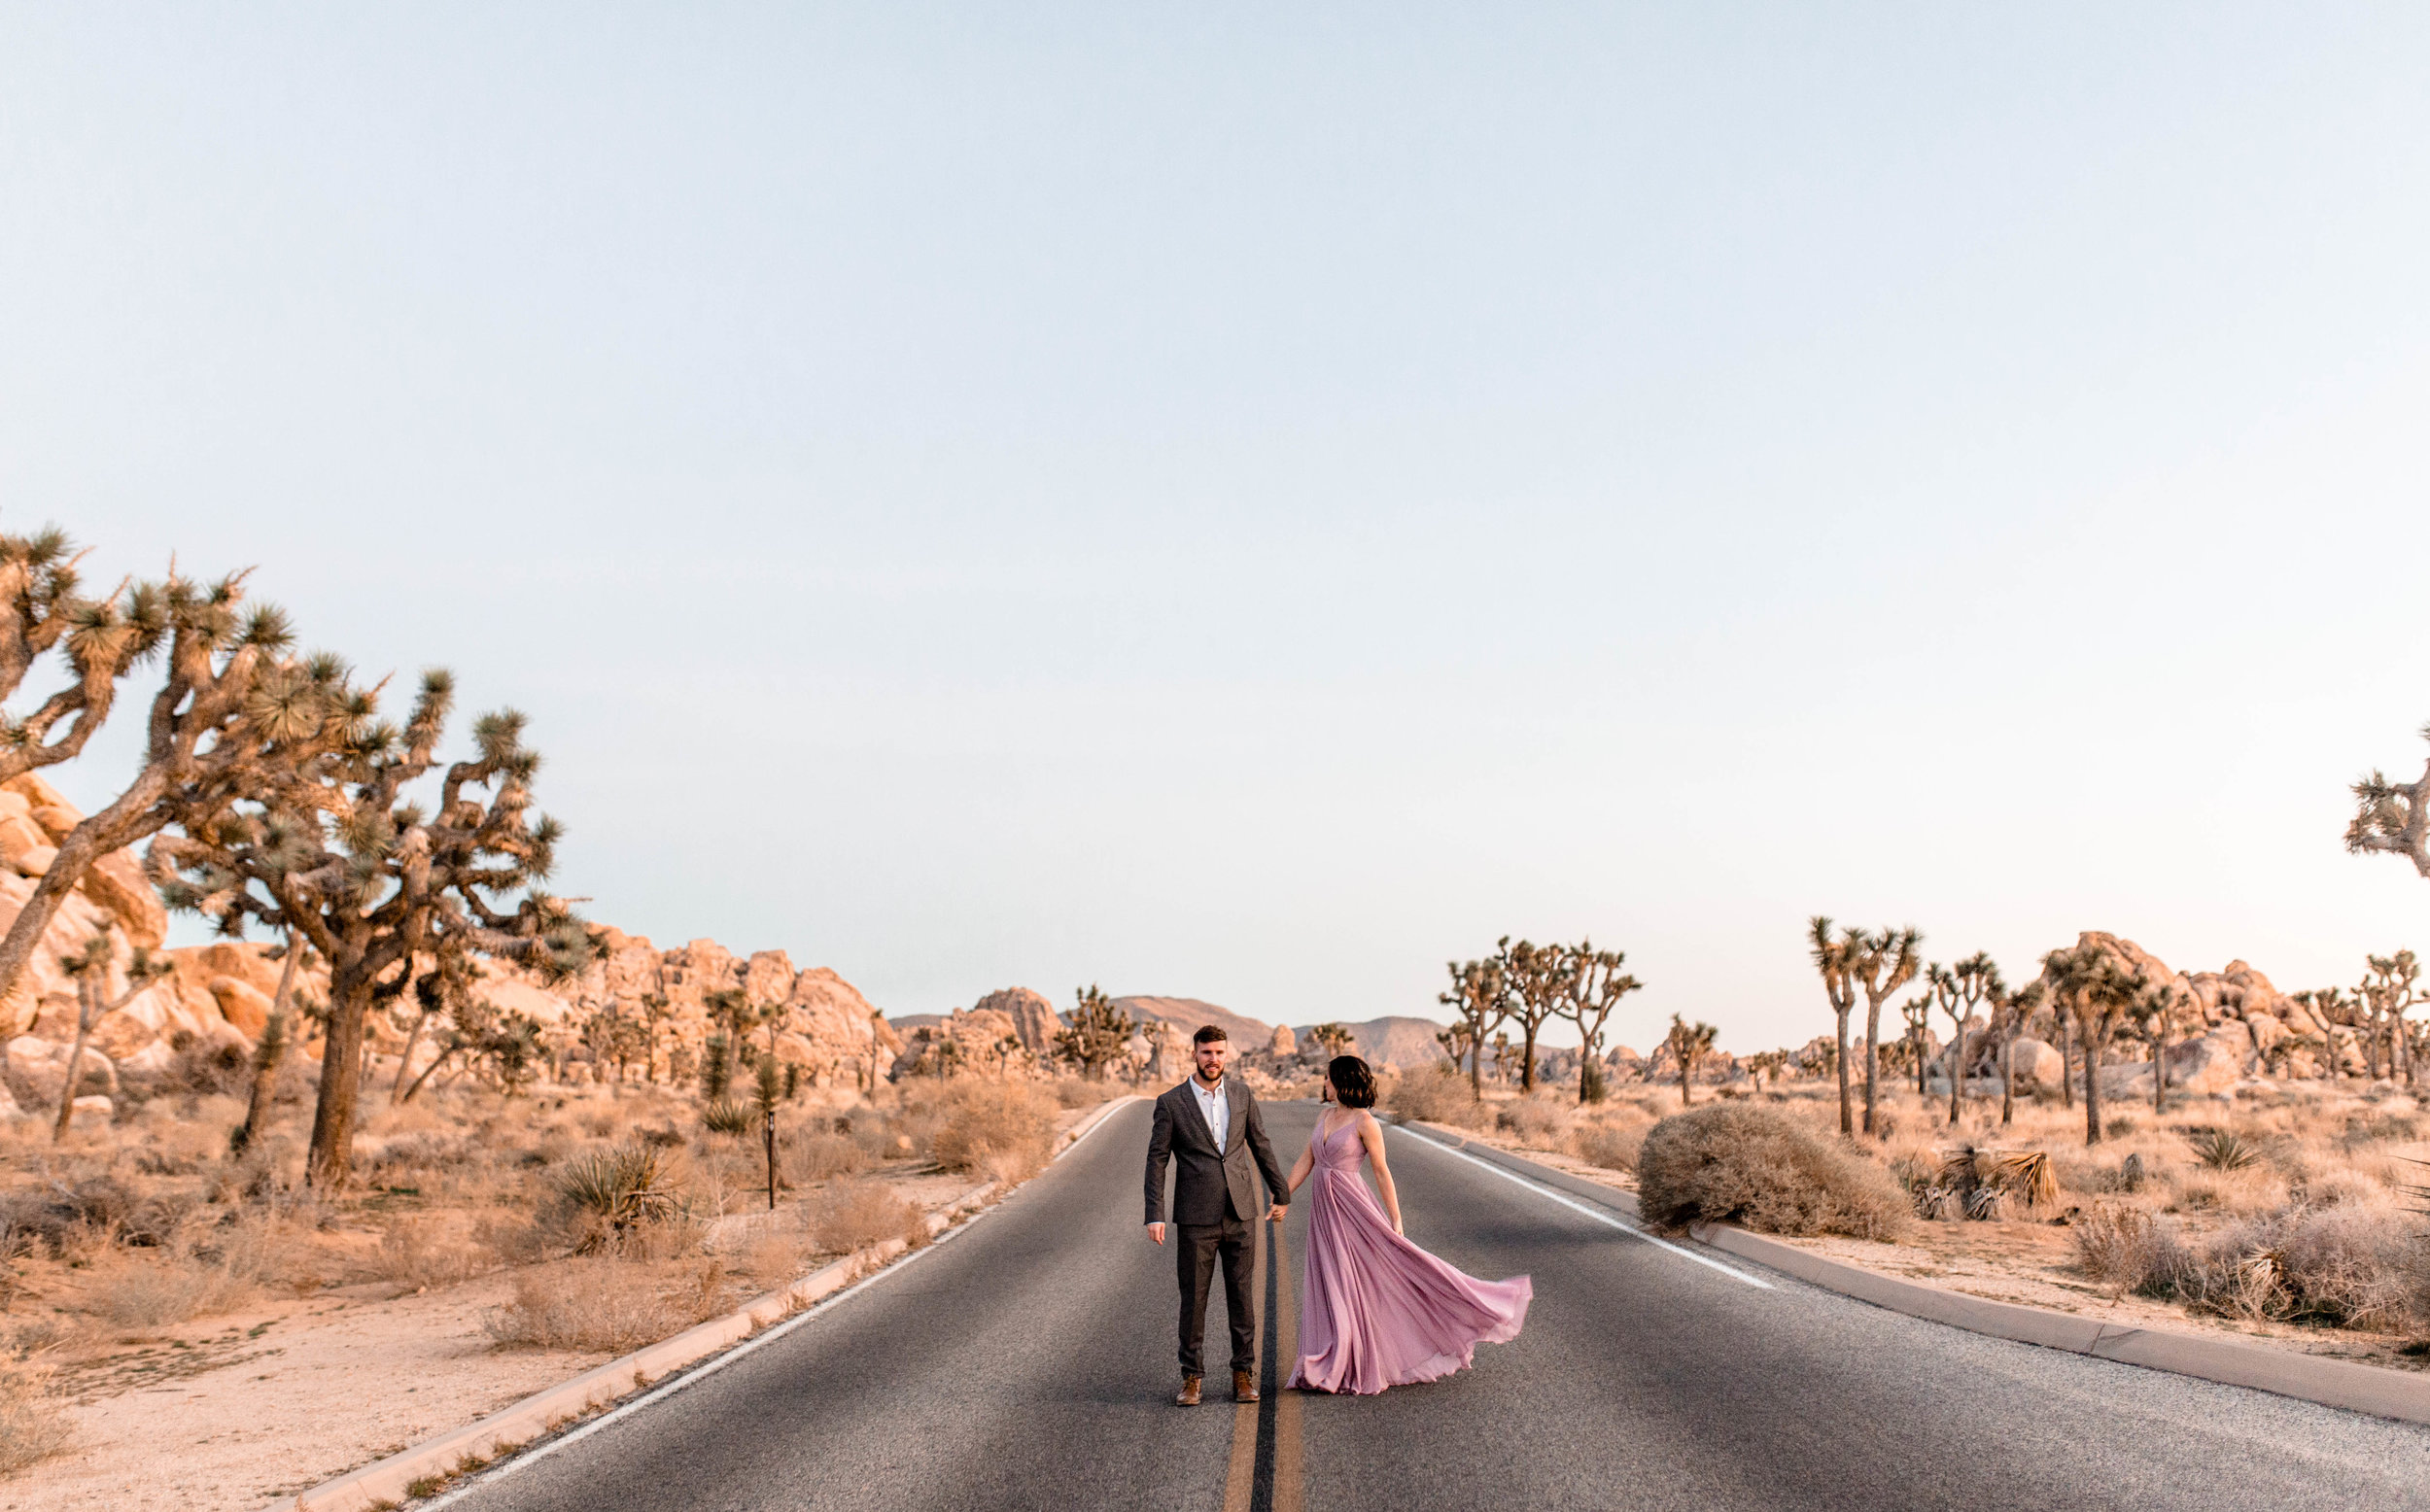 Nicole-Daacke-Photography-joshua-tree-national-park-jtree-elopement-engagement-session-eloping-in-joshua-tree-golden-desert-elopement-california-desert-elopement-photographer-111.jpg